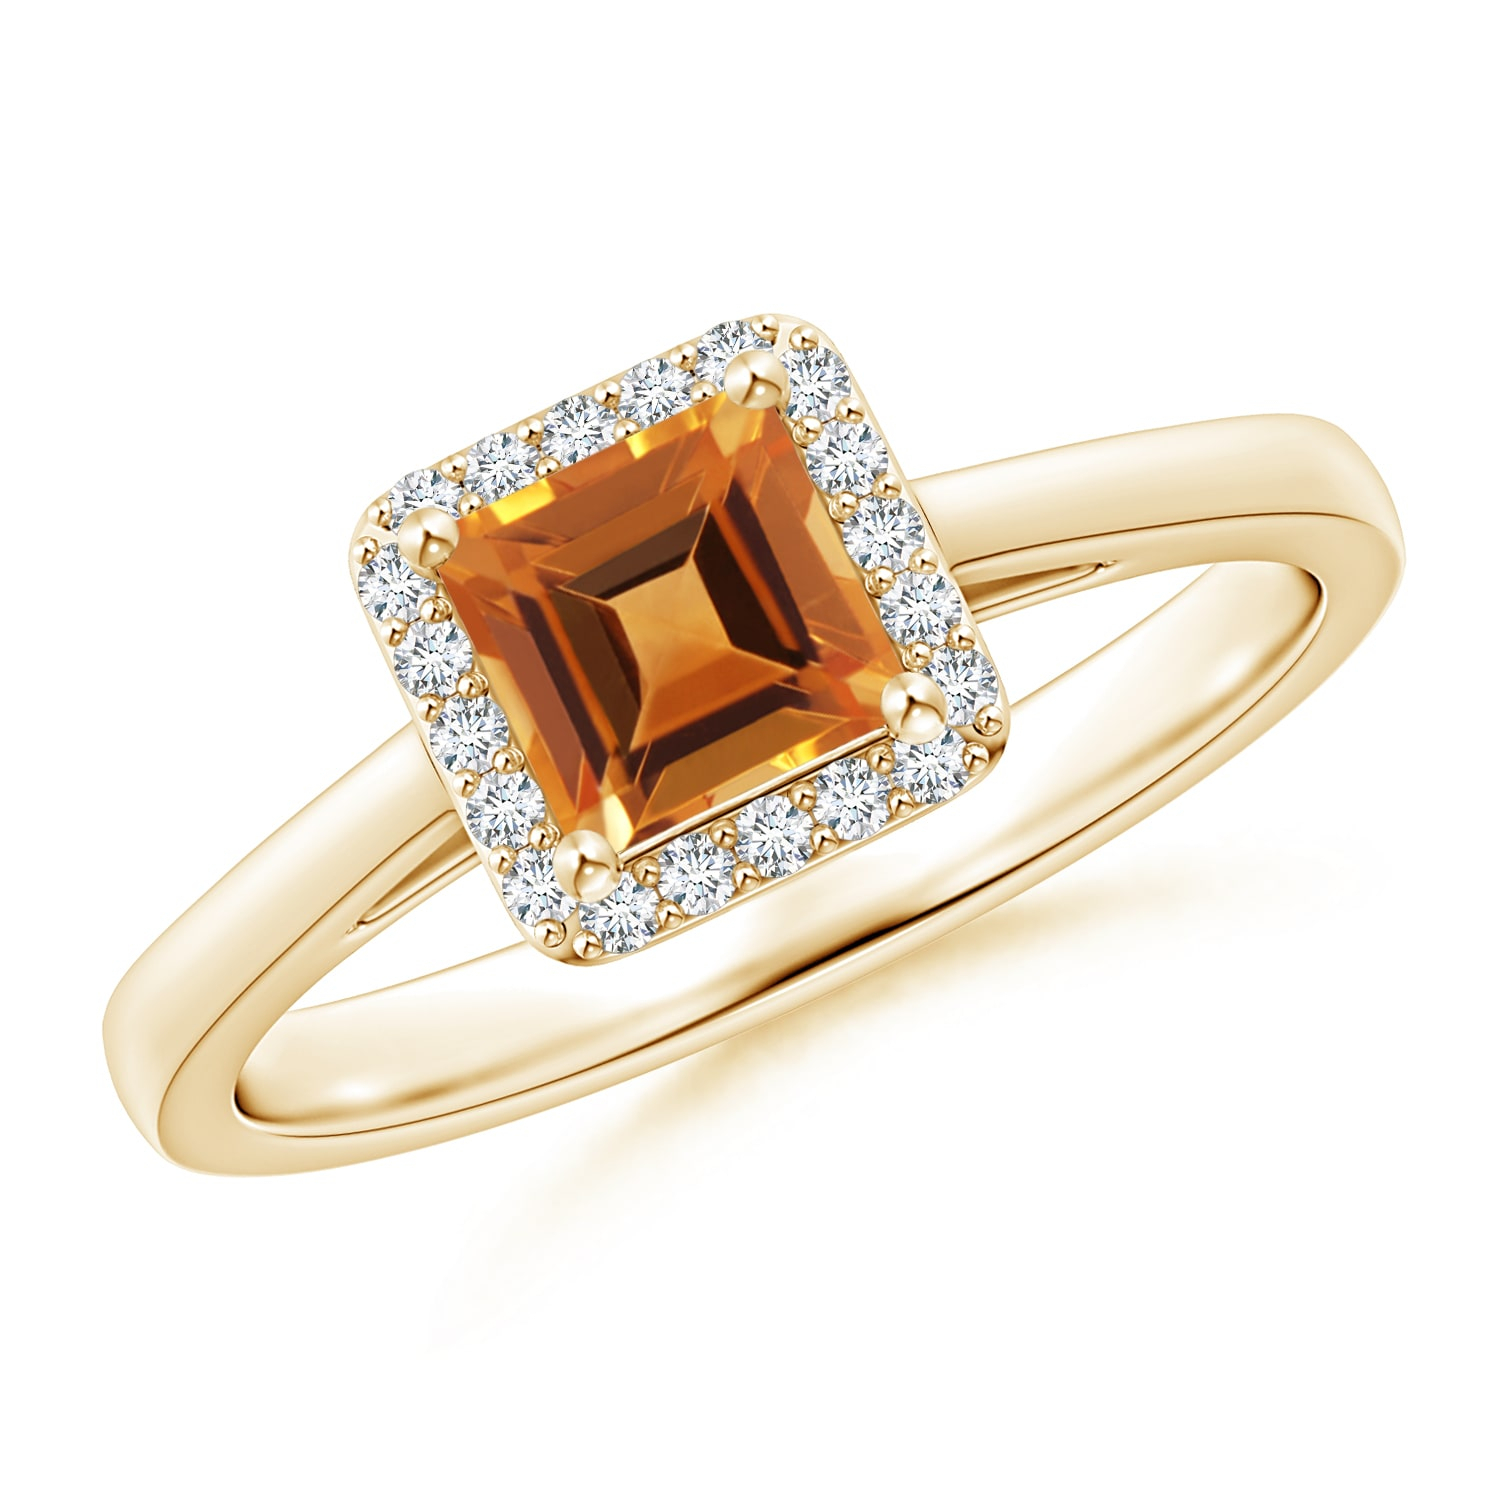 Classic Square Citrine Halo Ring Throughout Newest Sparkling Square Halo Rings (View 8 of 25)